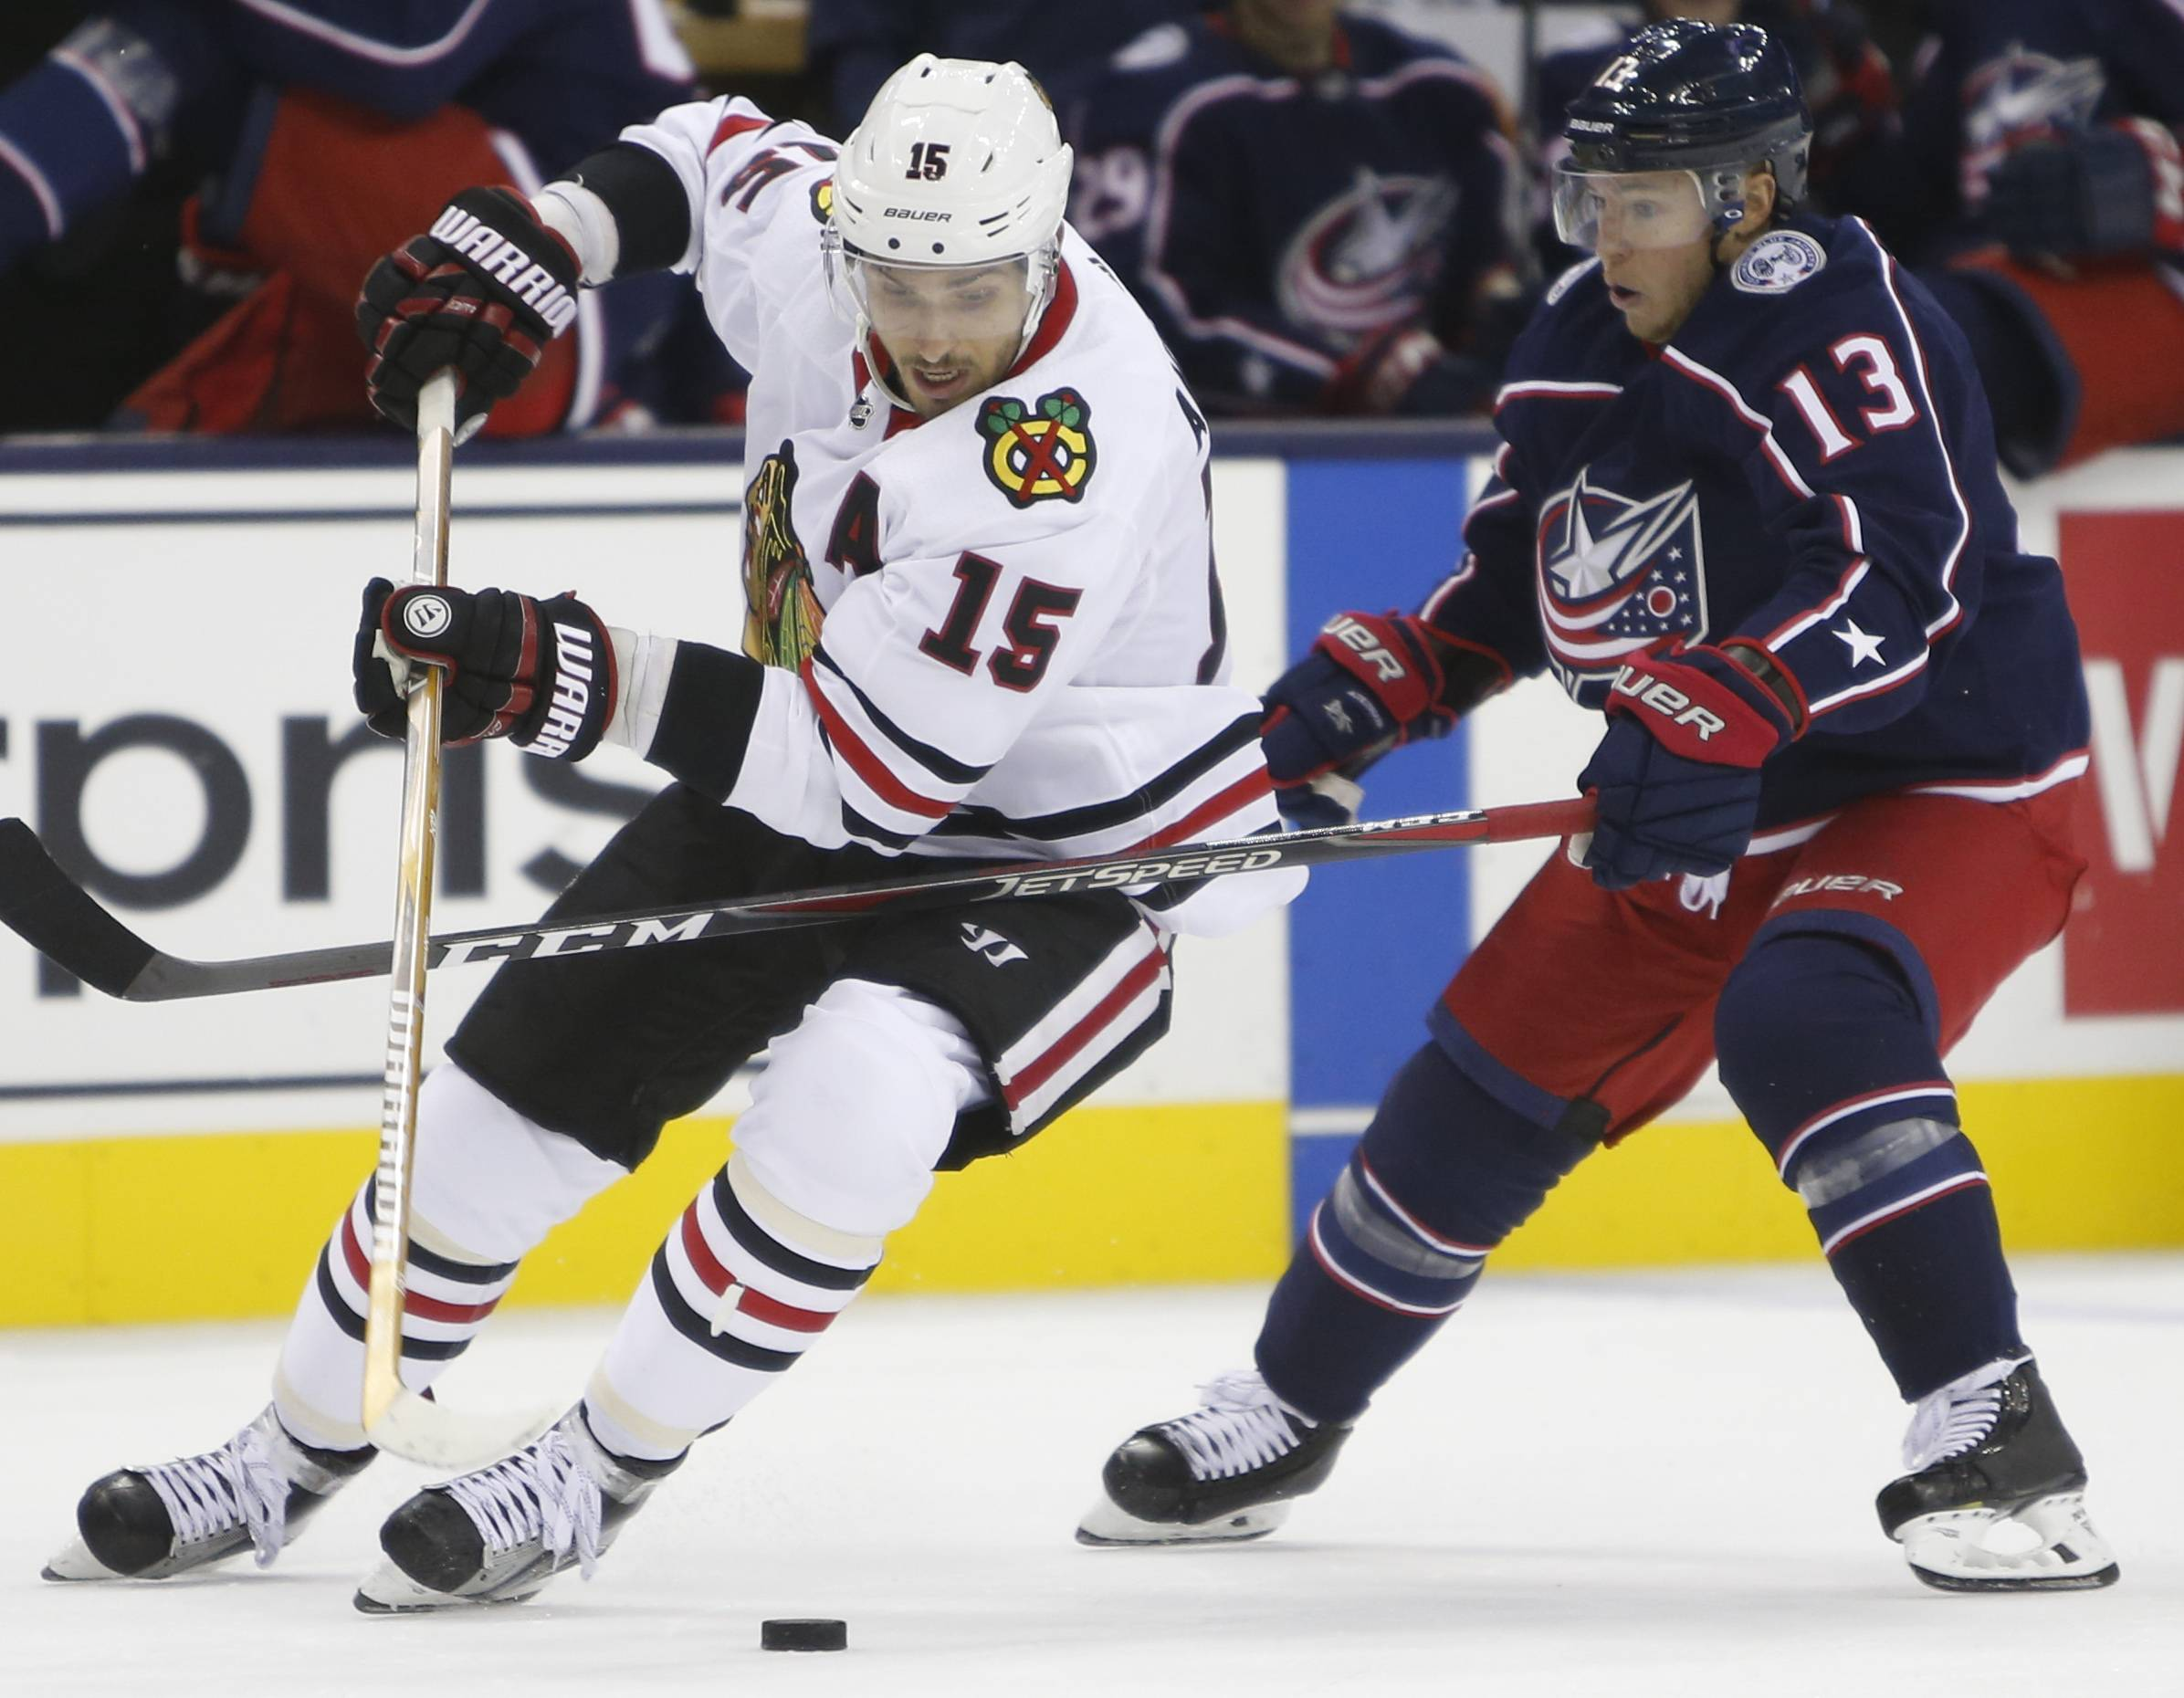 Chicago Blackhawks' Artem Anisimov, left, of Russia, keeps the puck away from Columbus Blue Jackets' Cam Atkinson during the third period of a preseason NHL hockey game Tuesday, Sept. 18, 2018, in Columbus, Ohio. (AP Photo/Jay LaPrete)